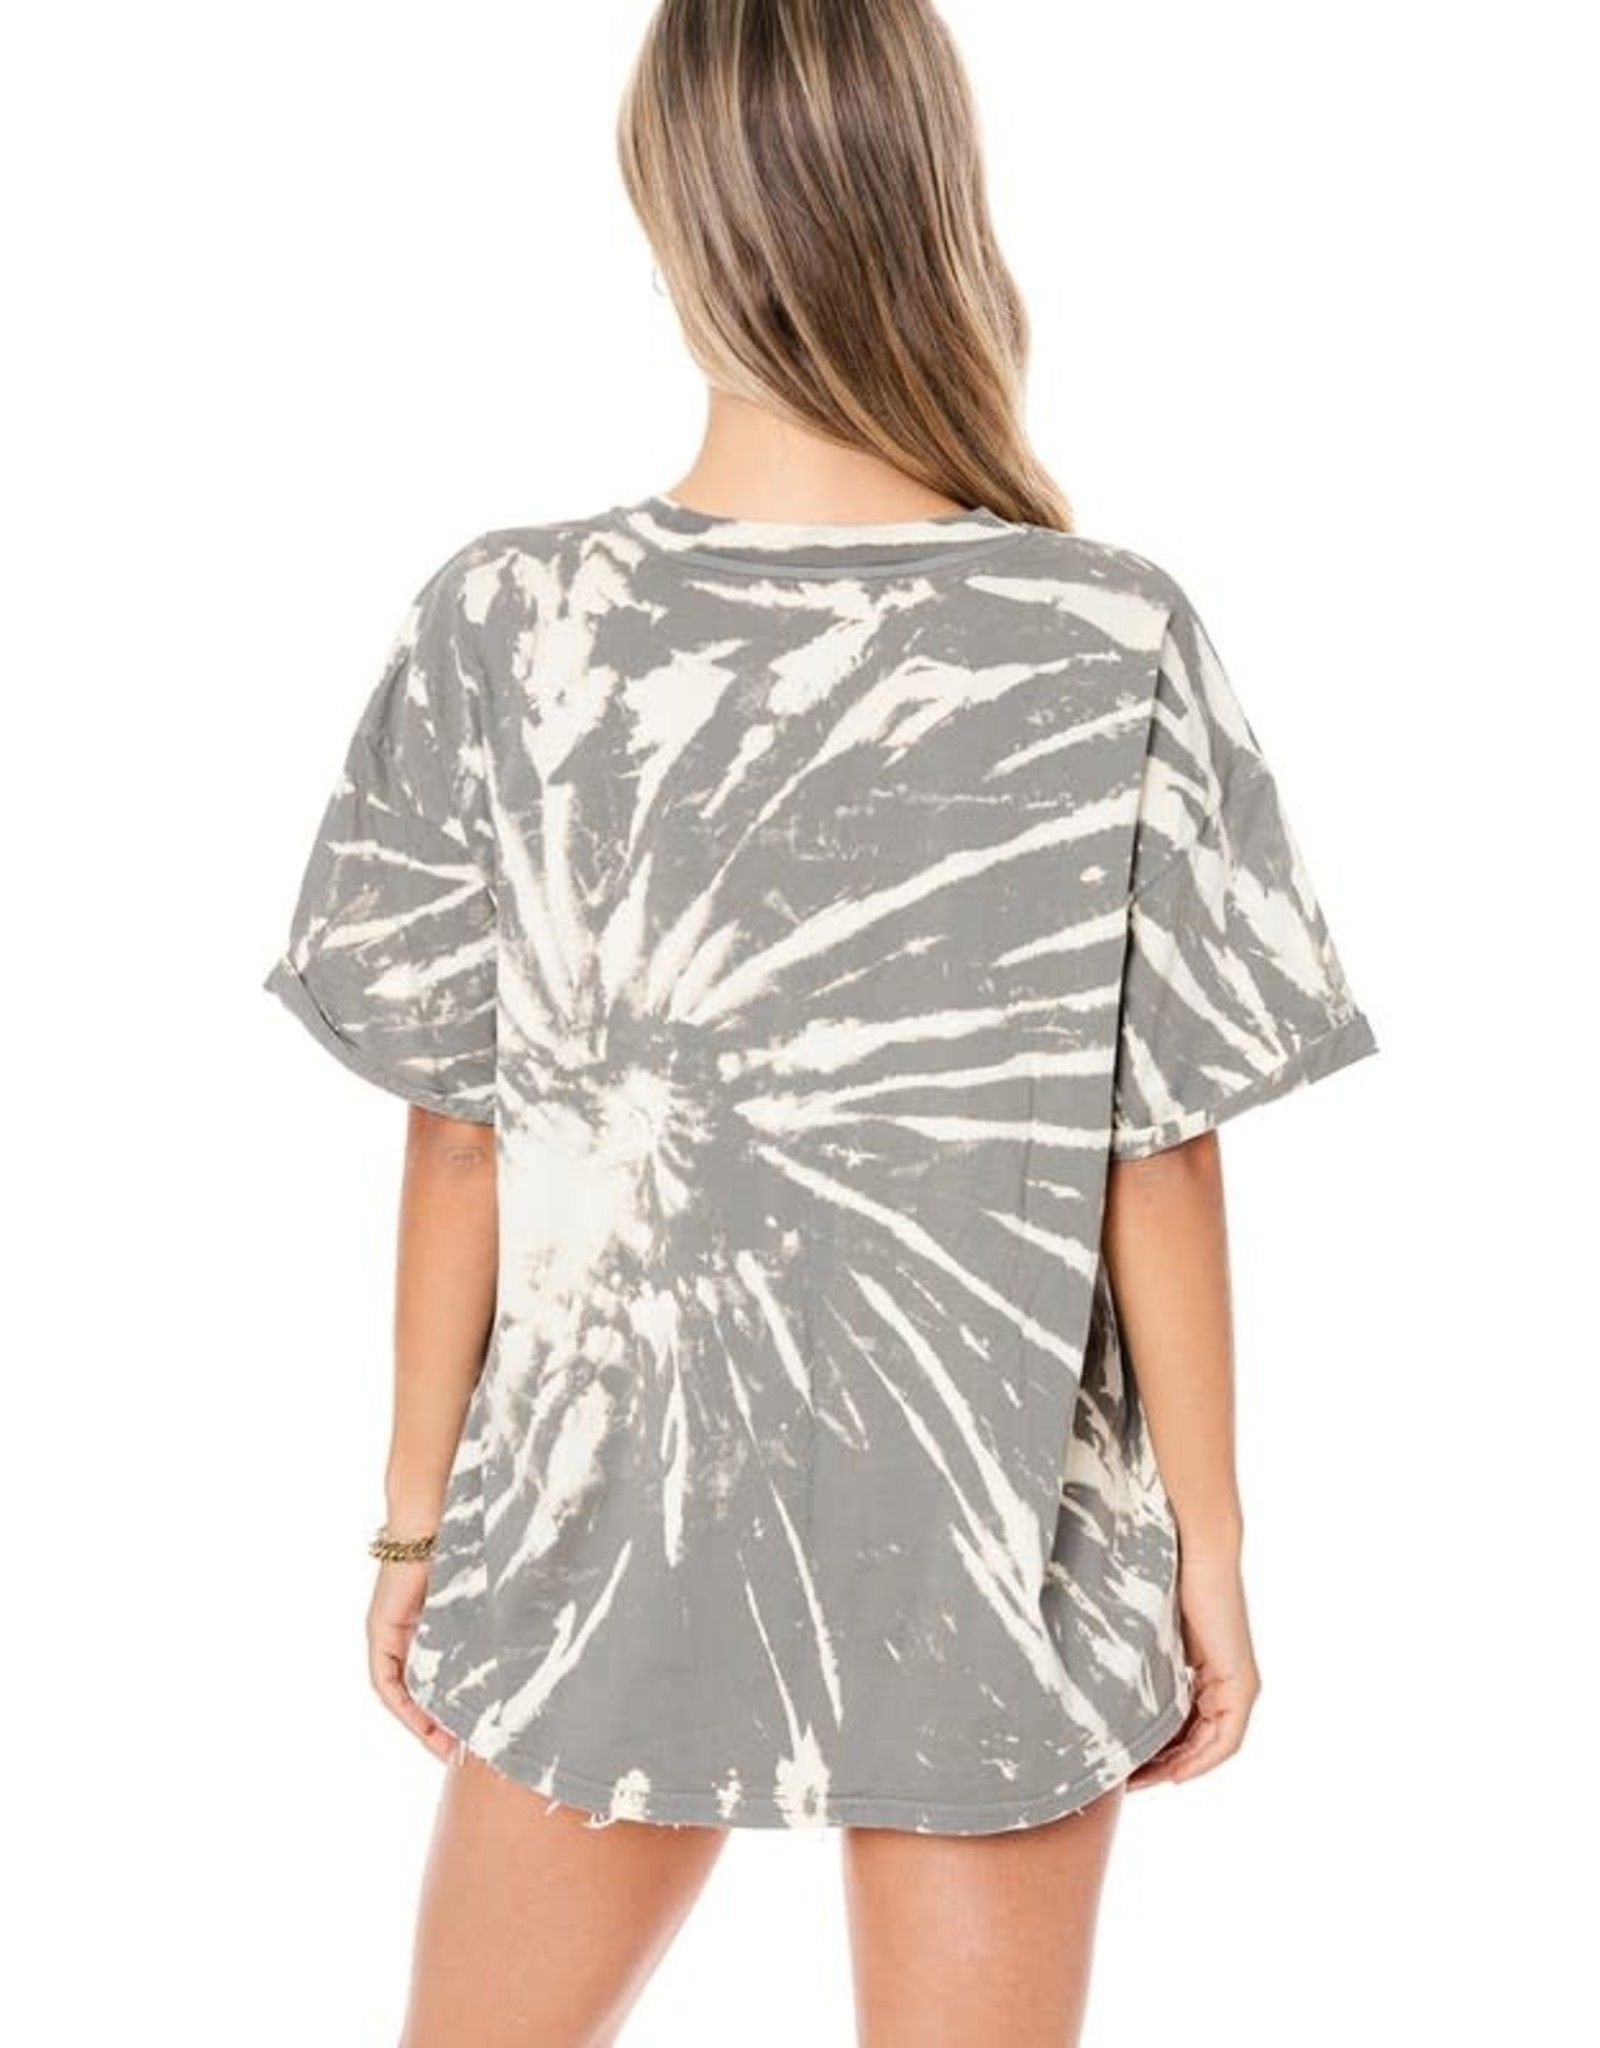 On Trend Graphic Tee